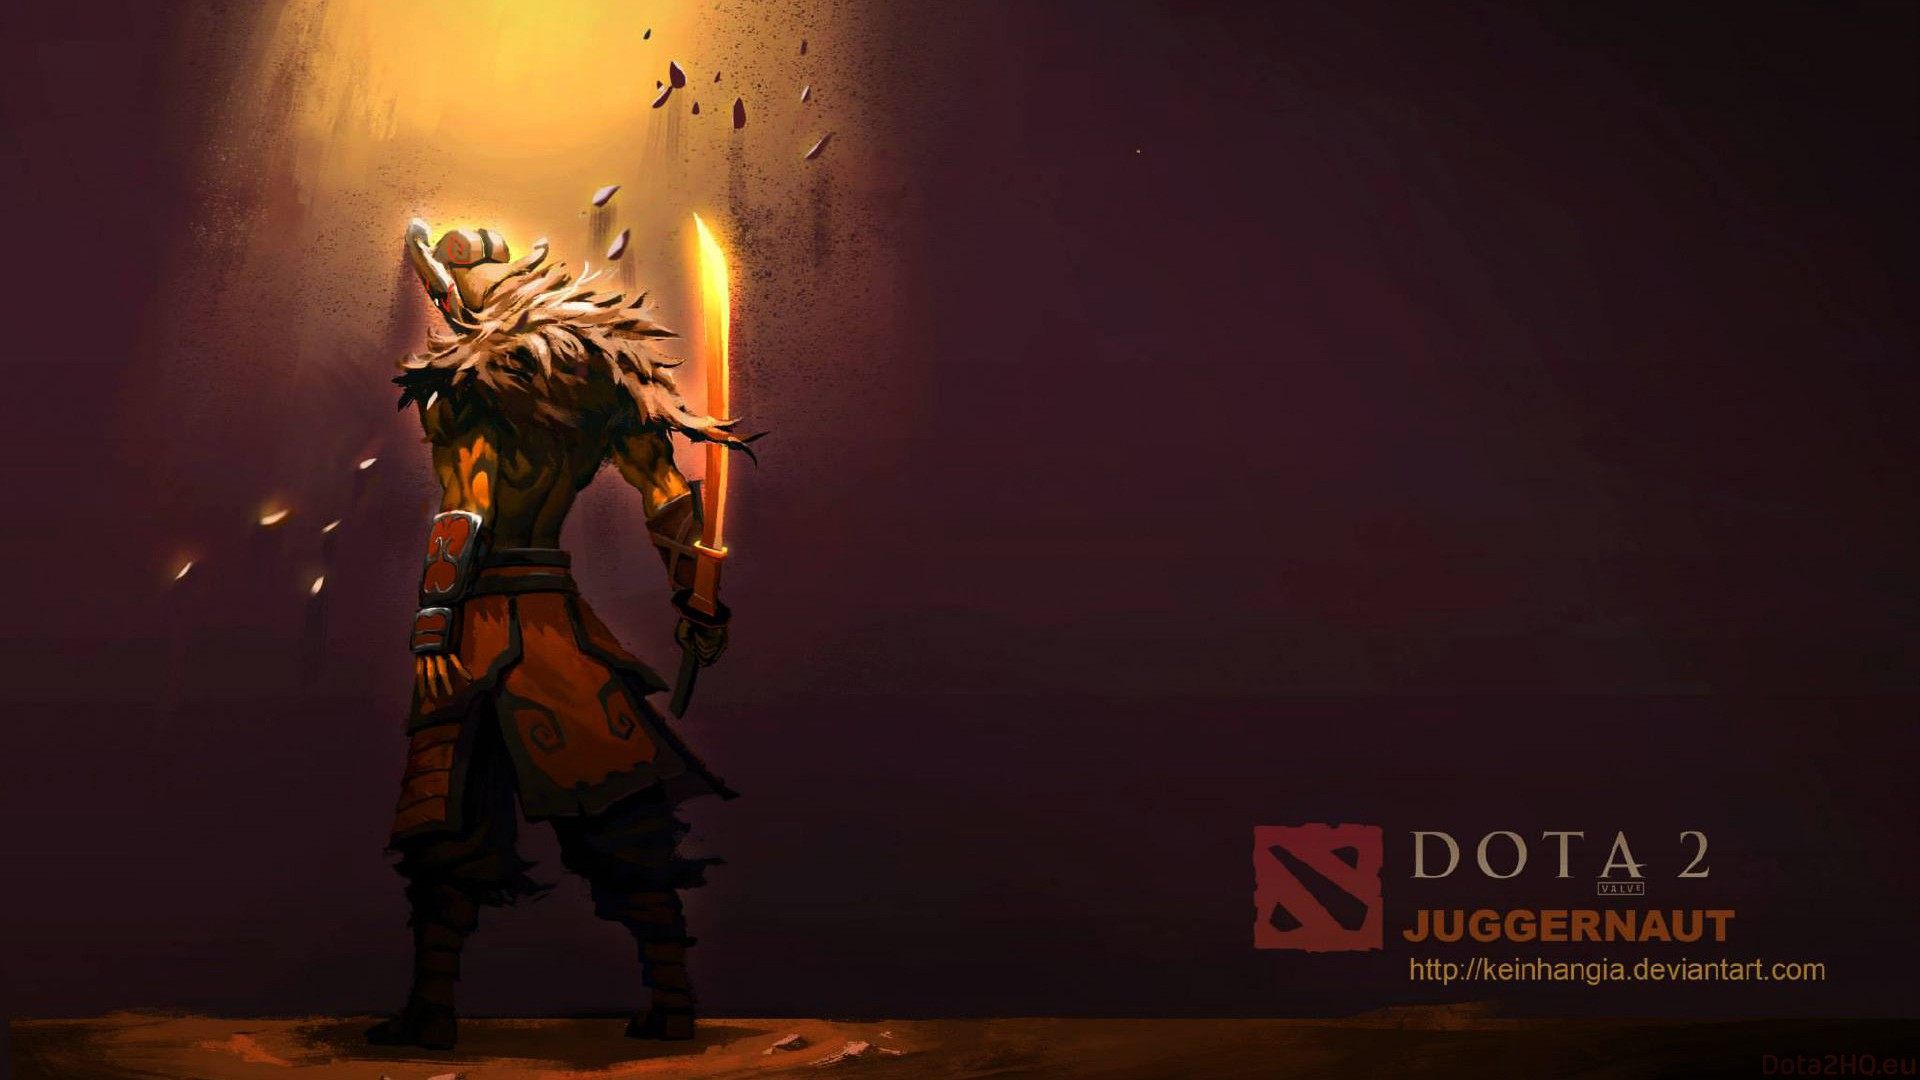 Dota 2 Wallpaper 4k For Android The Galleries Of Hd Wallpaper